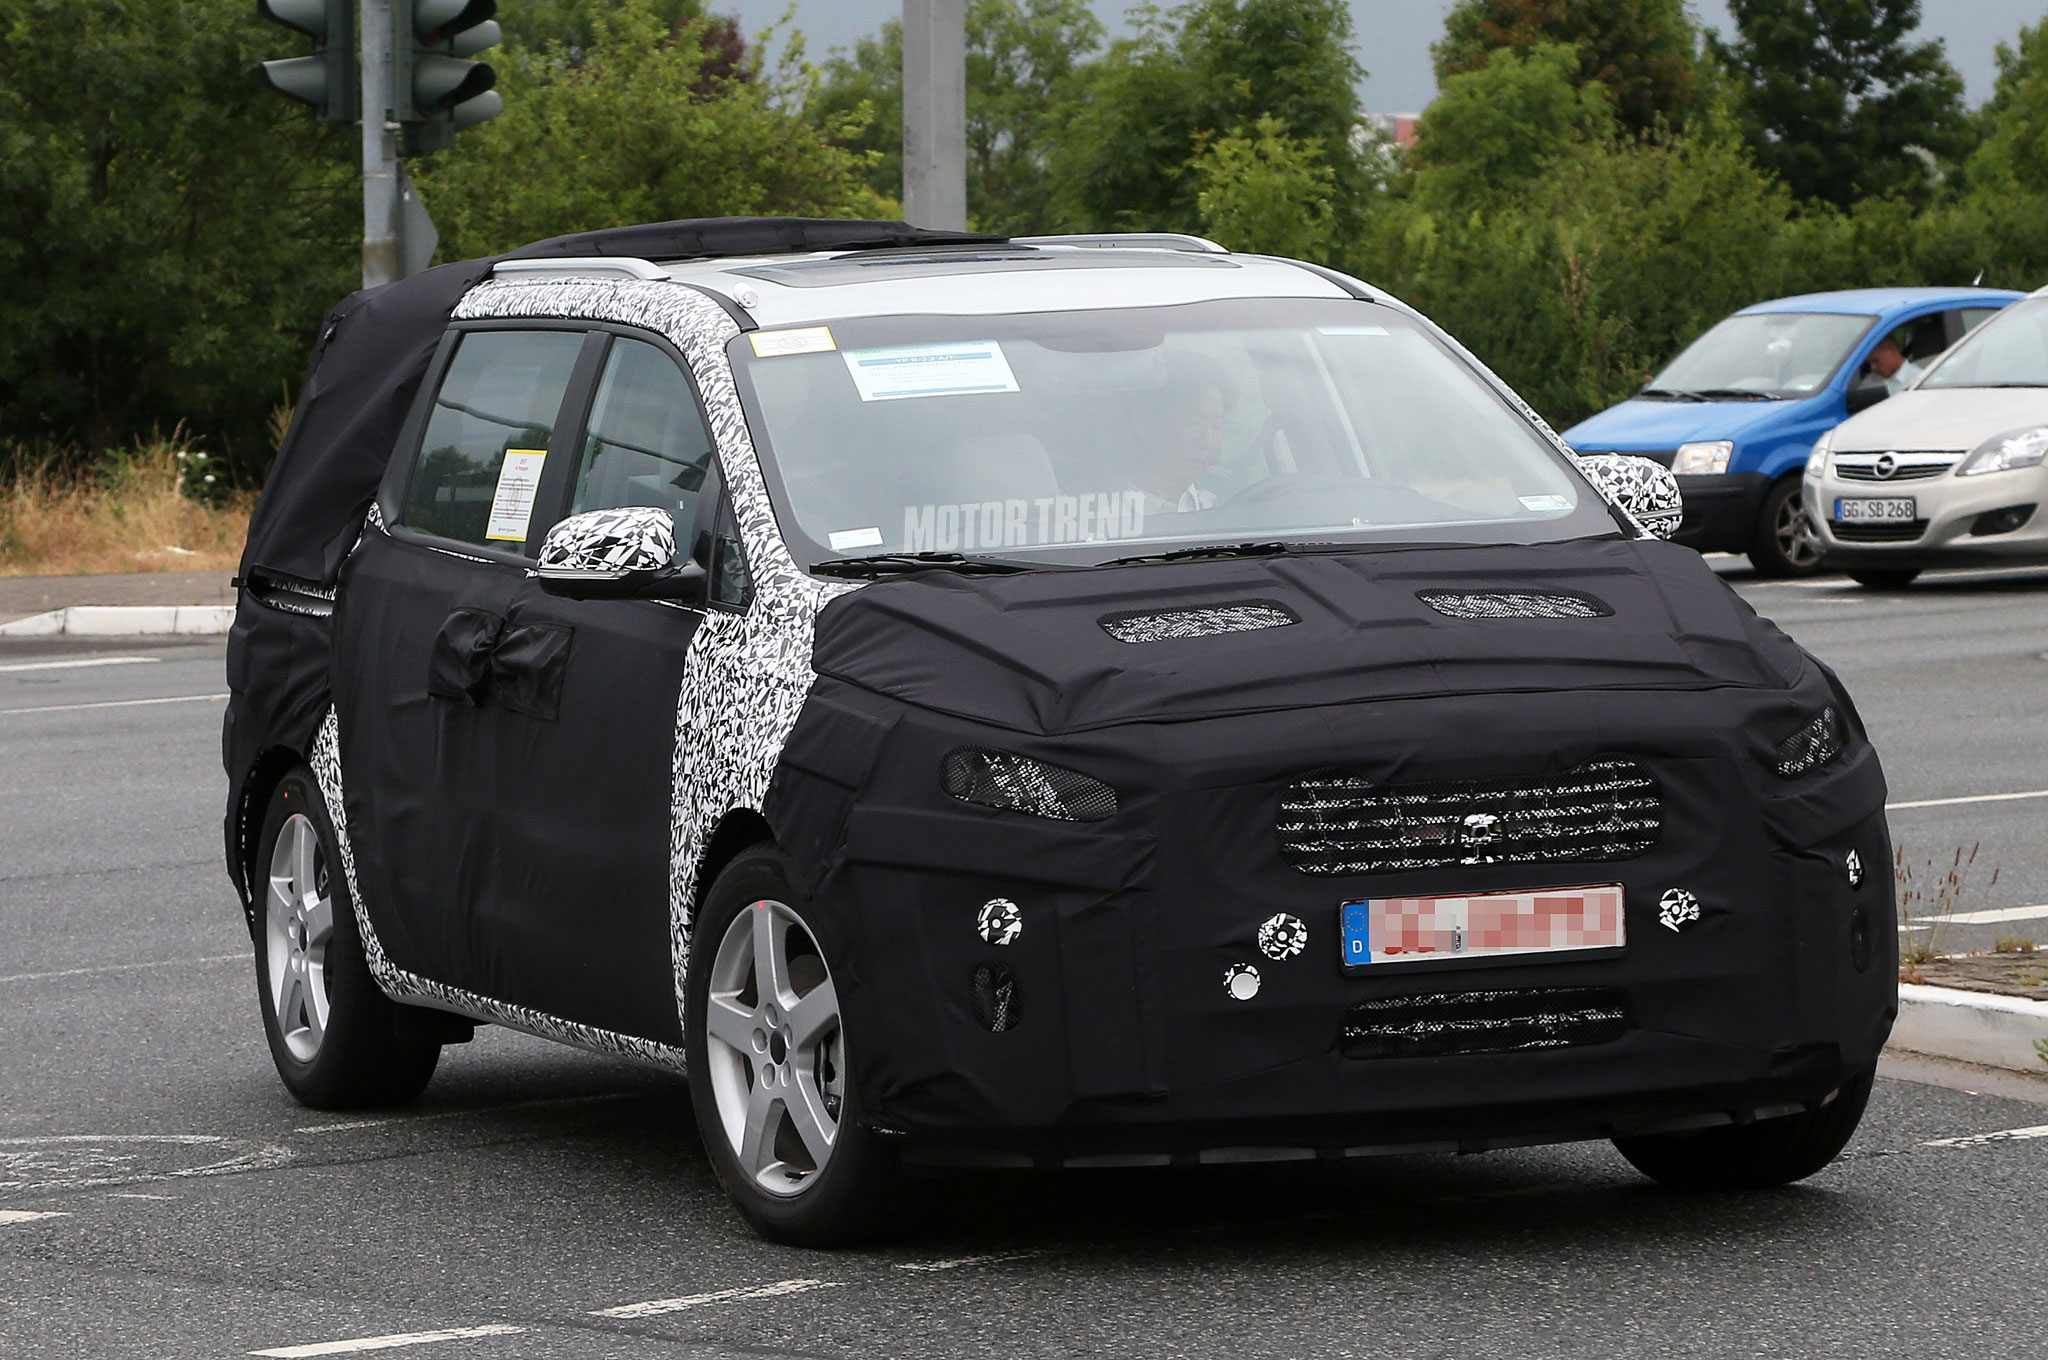 next gen kia sedona minivan spied with kv7 inspired styling motortrendnext gen kia sedona minivan spied with kv7 inspired styling